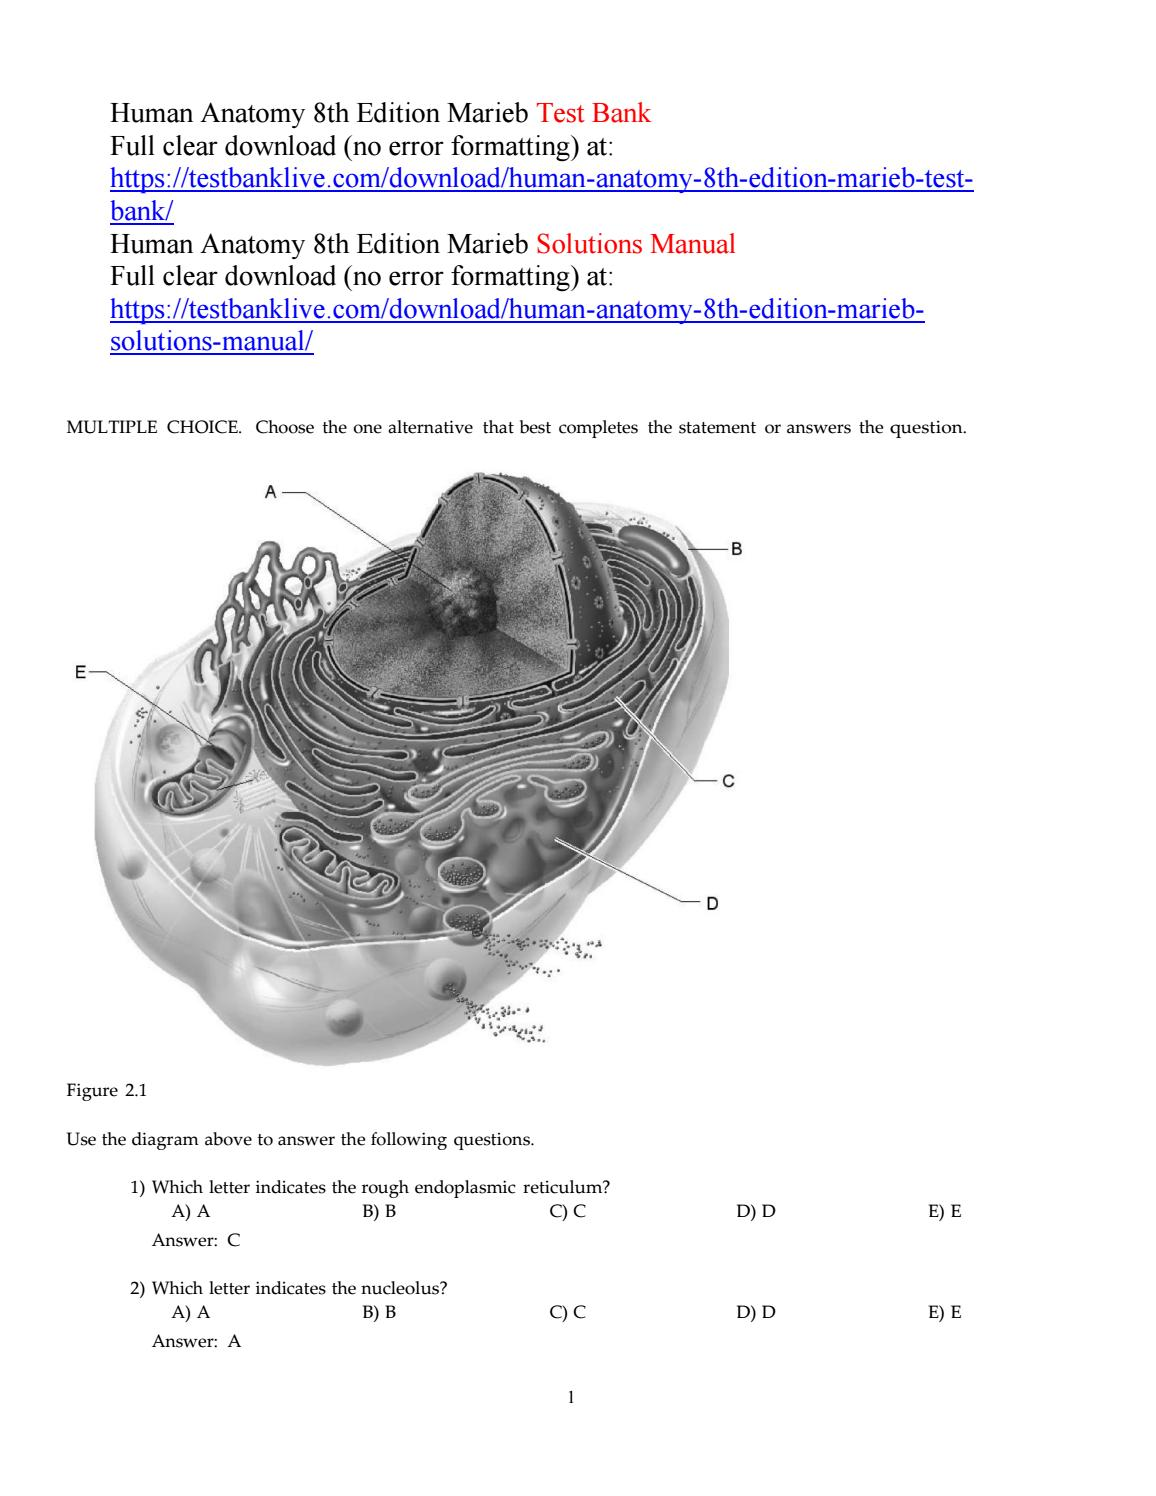 Human anatomy 8th edition marieb test bank by Cup927 - issuu